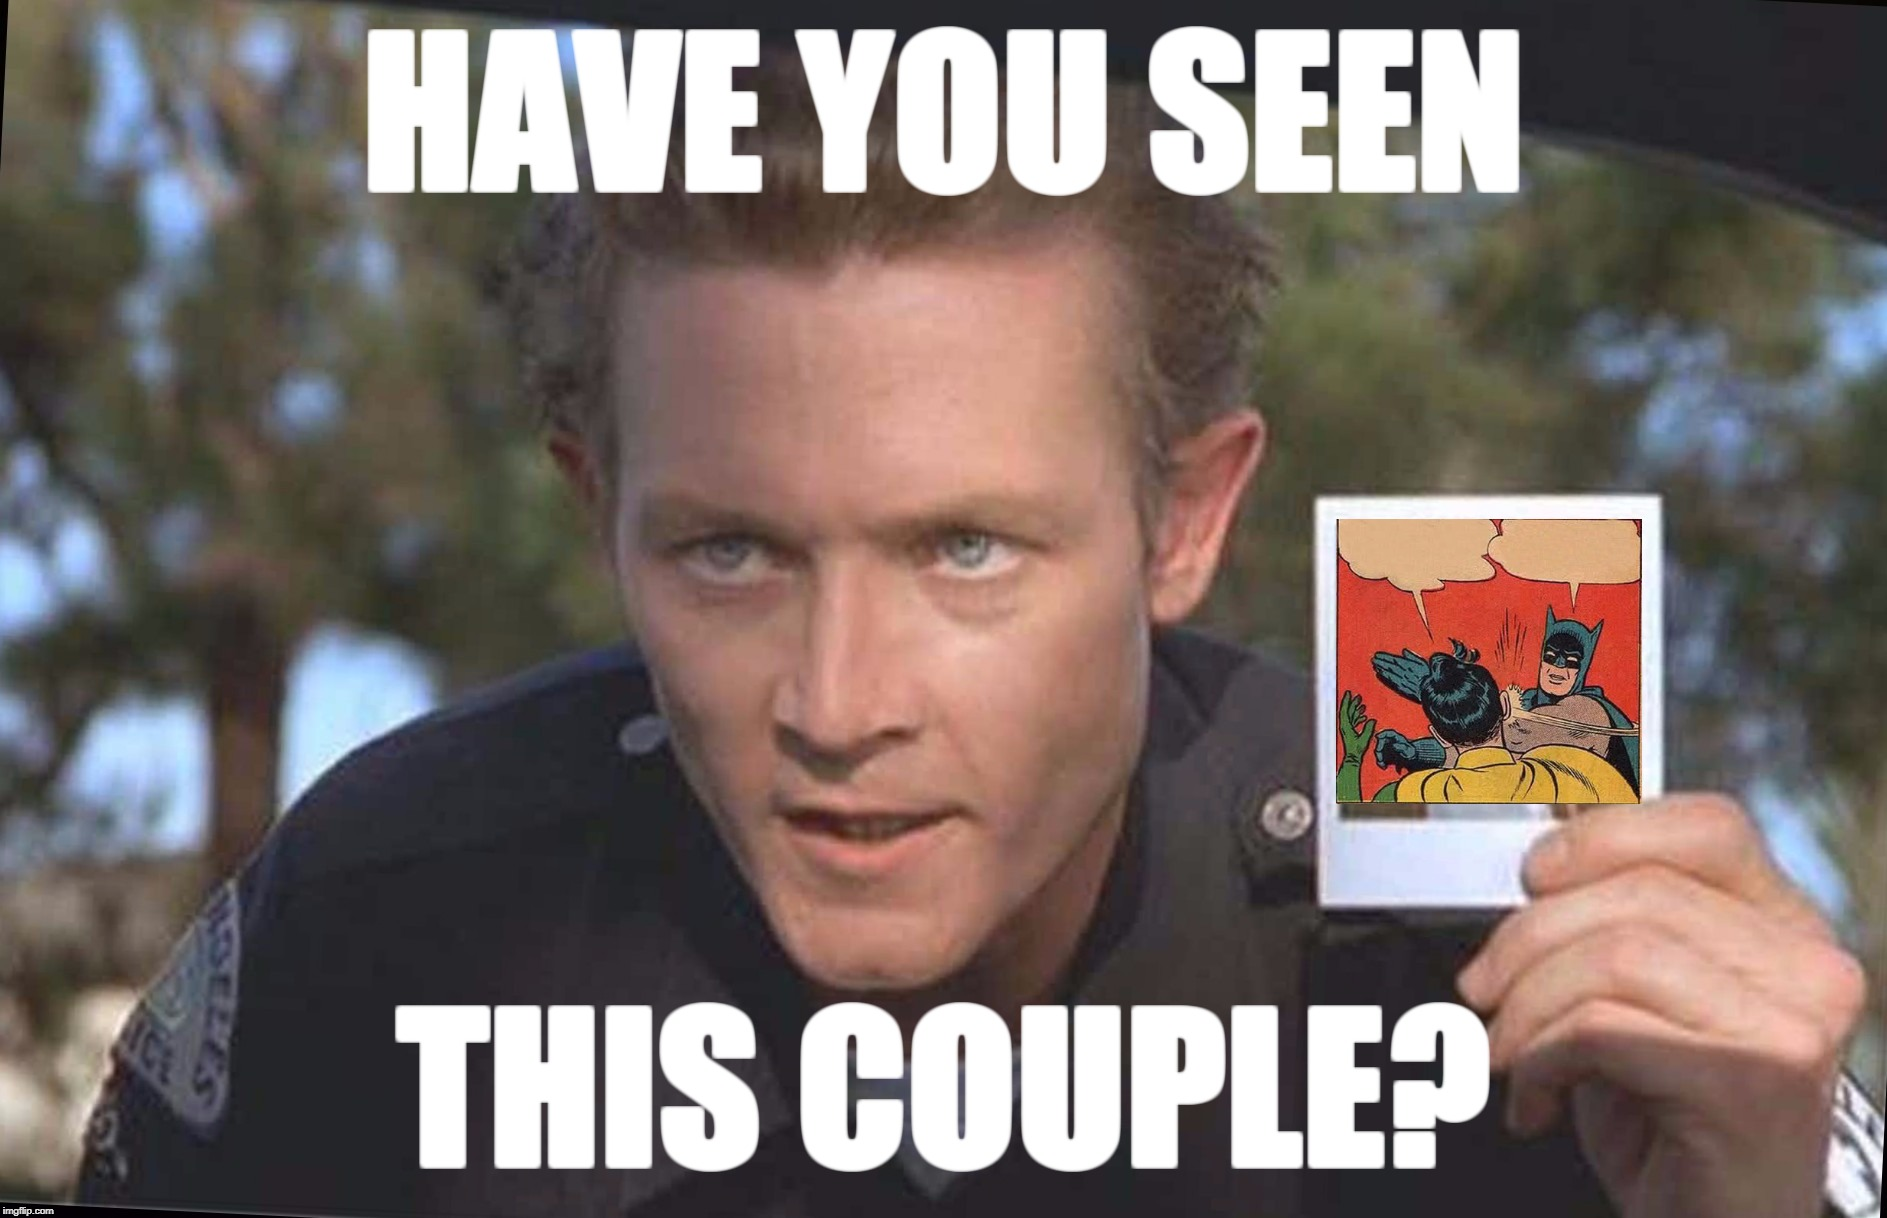 Have You Seen This Boy | HAVE YOU SEEN THIS COUPLE? | image tagged in have you seen this boy | made w/ Imgflip meme maker